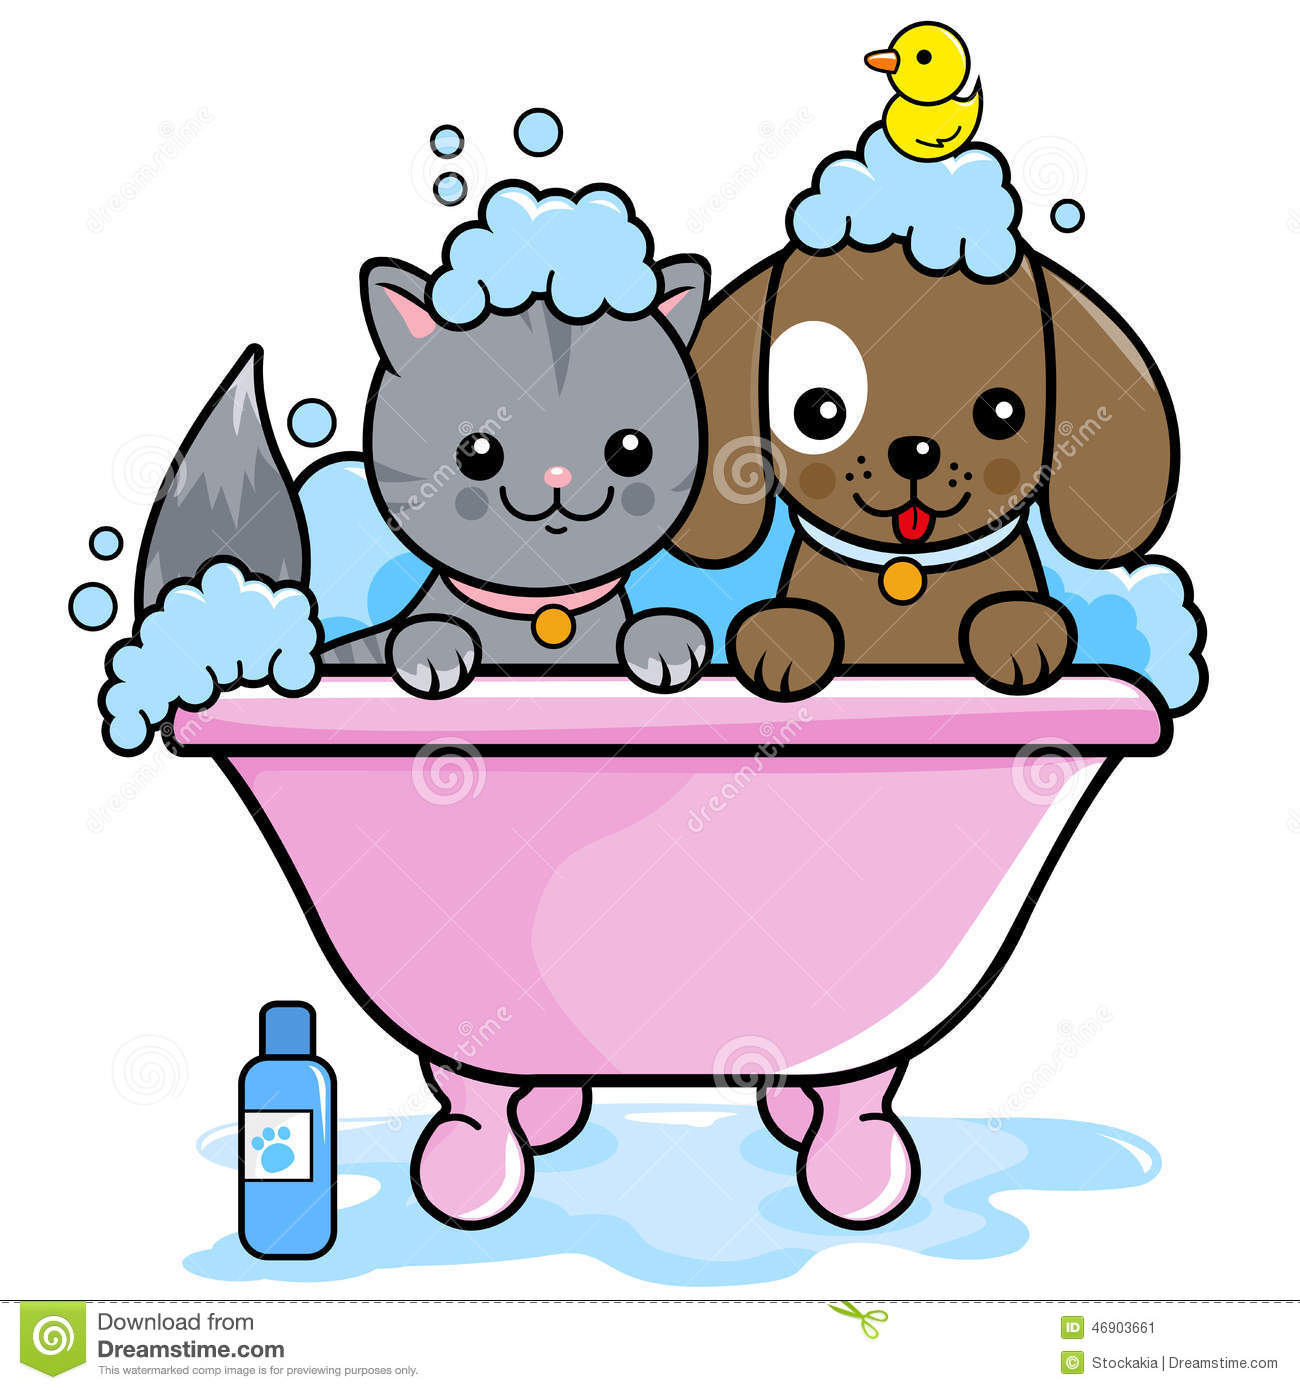 Badezimmer Comic Dog And Cat Taking A Bath Stock Vector Illustration Of